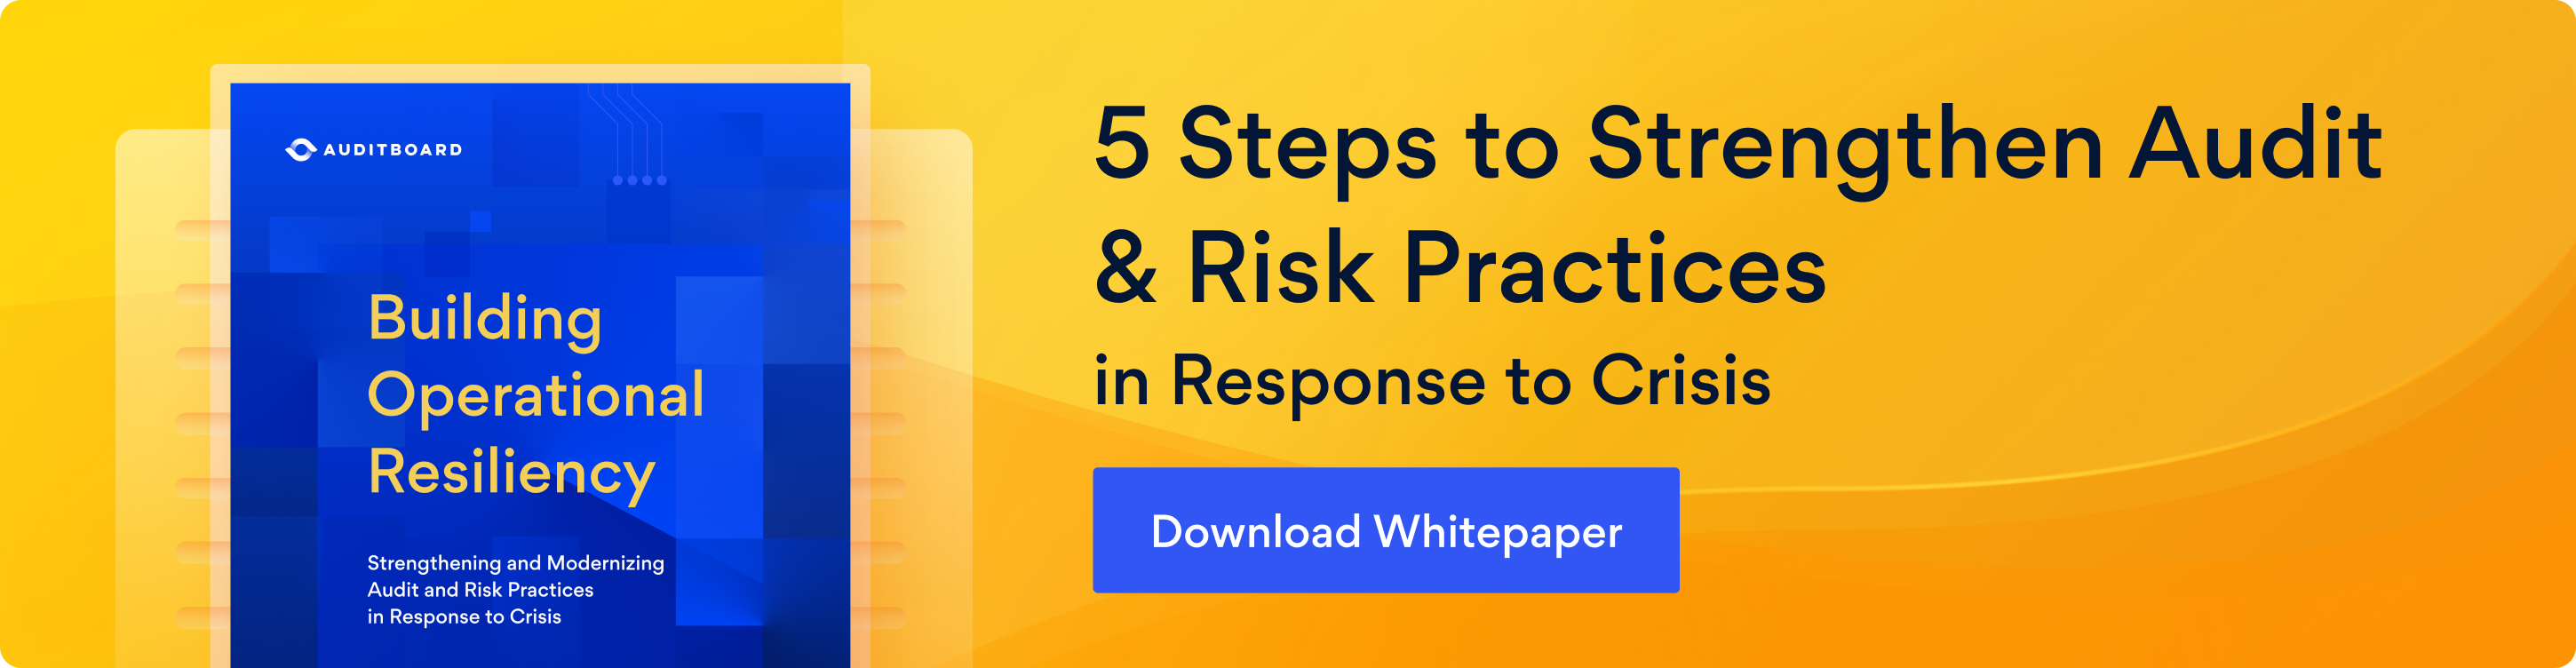 Banner image inviting you to click here to download our free 5 Steps to Strengthen Audit & Risk Practices in Response to Crisis whitepaper.